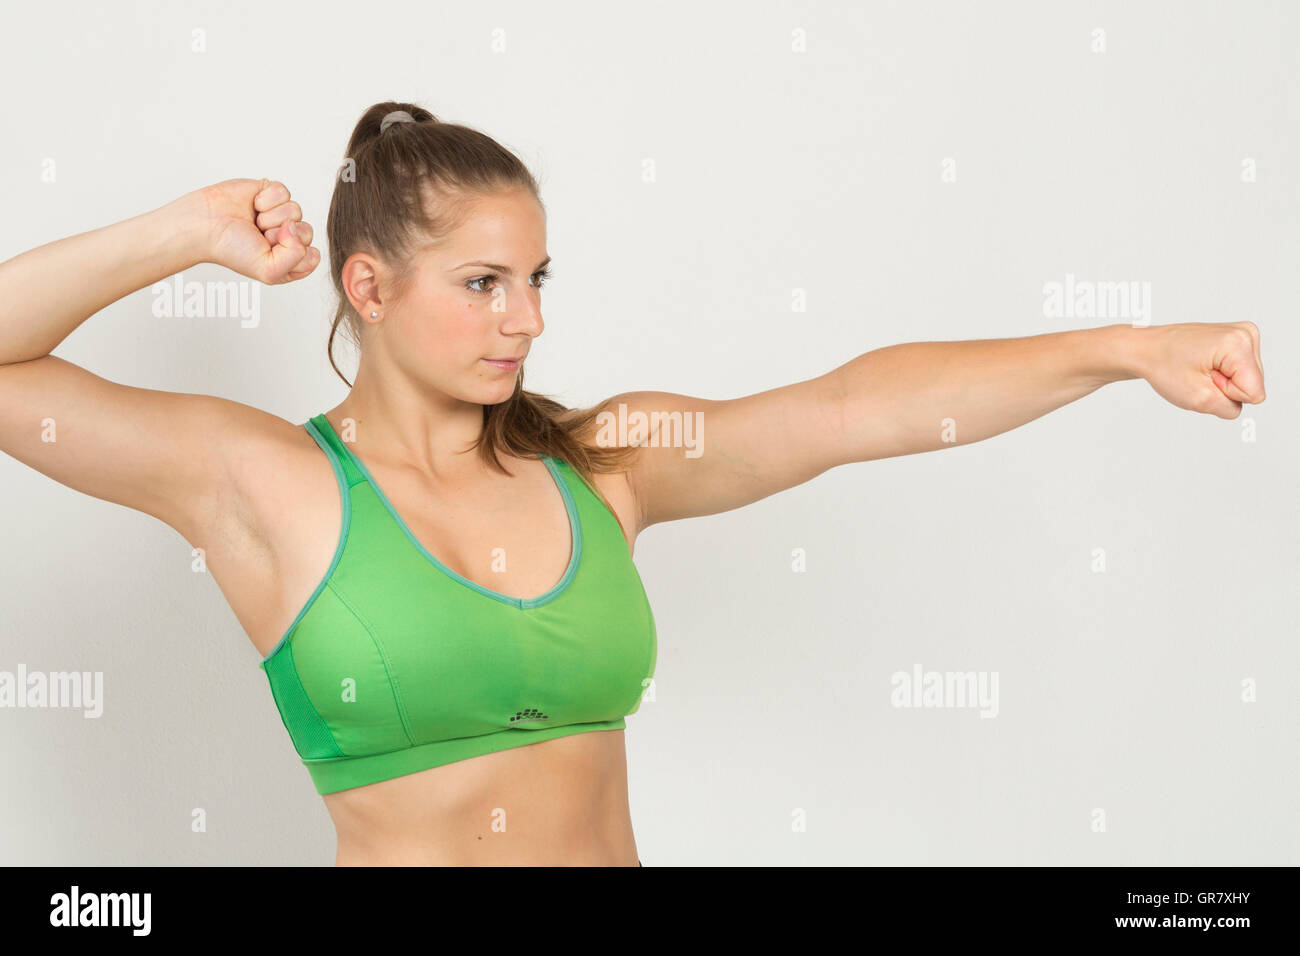 Woman In Green Bustier Shows Ready For Battle - Stock Image